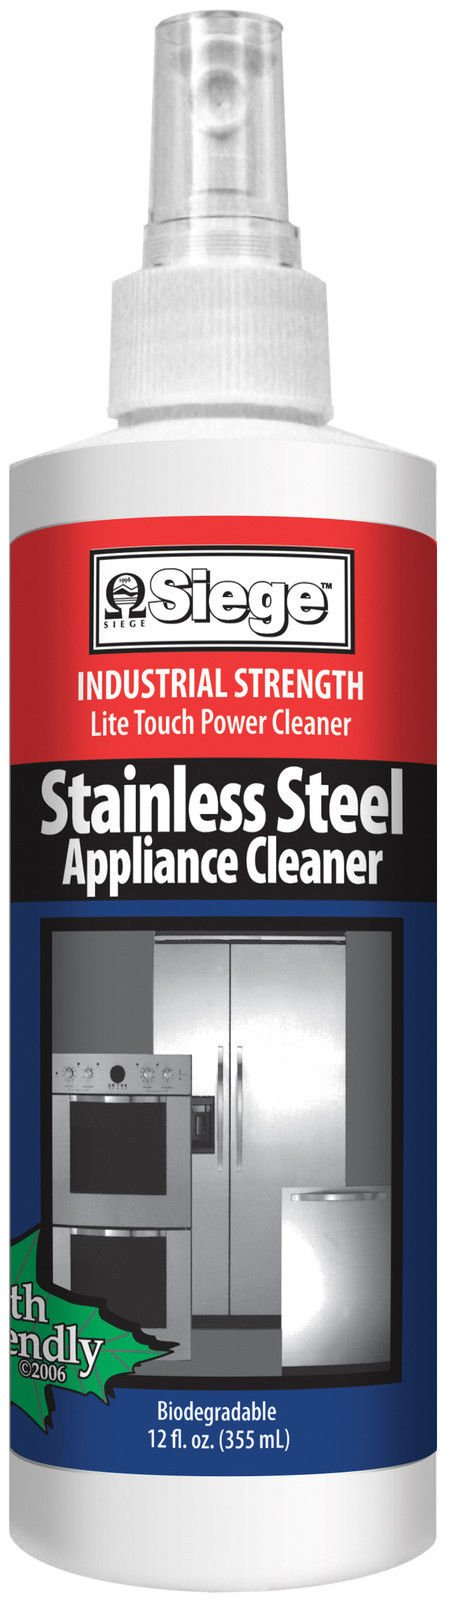 Siege Stainless Steel Appliance Cleaner 12 fl oz by HIC Harold Import Co.